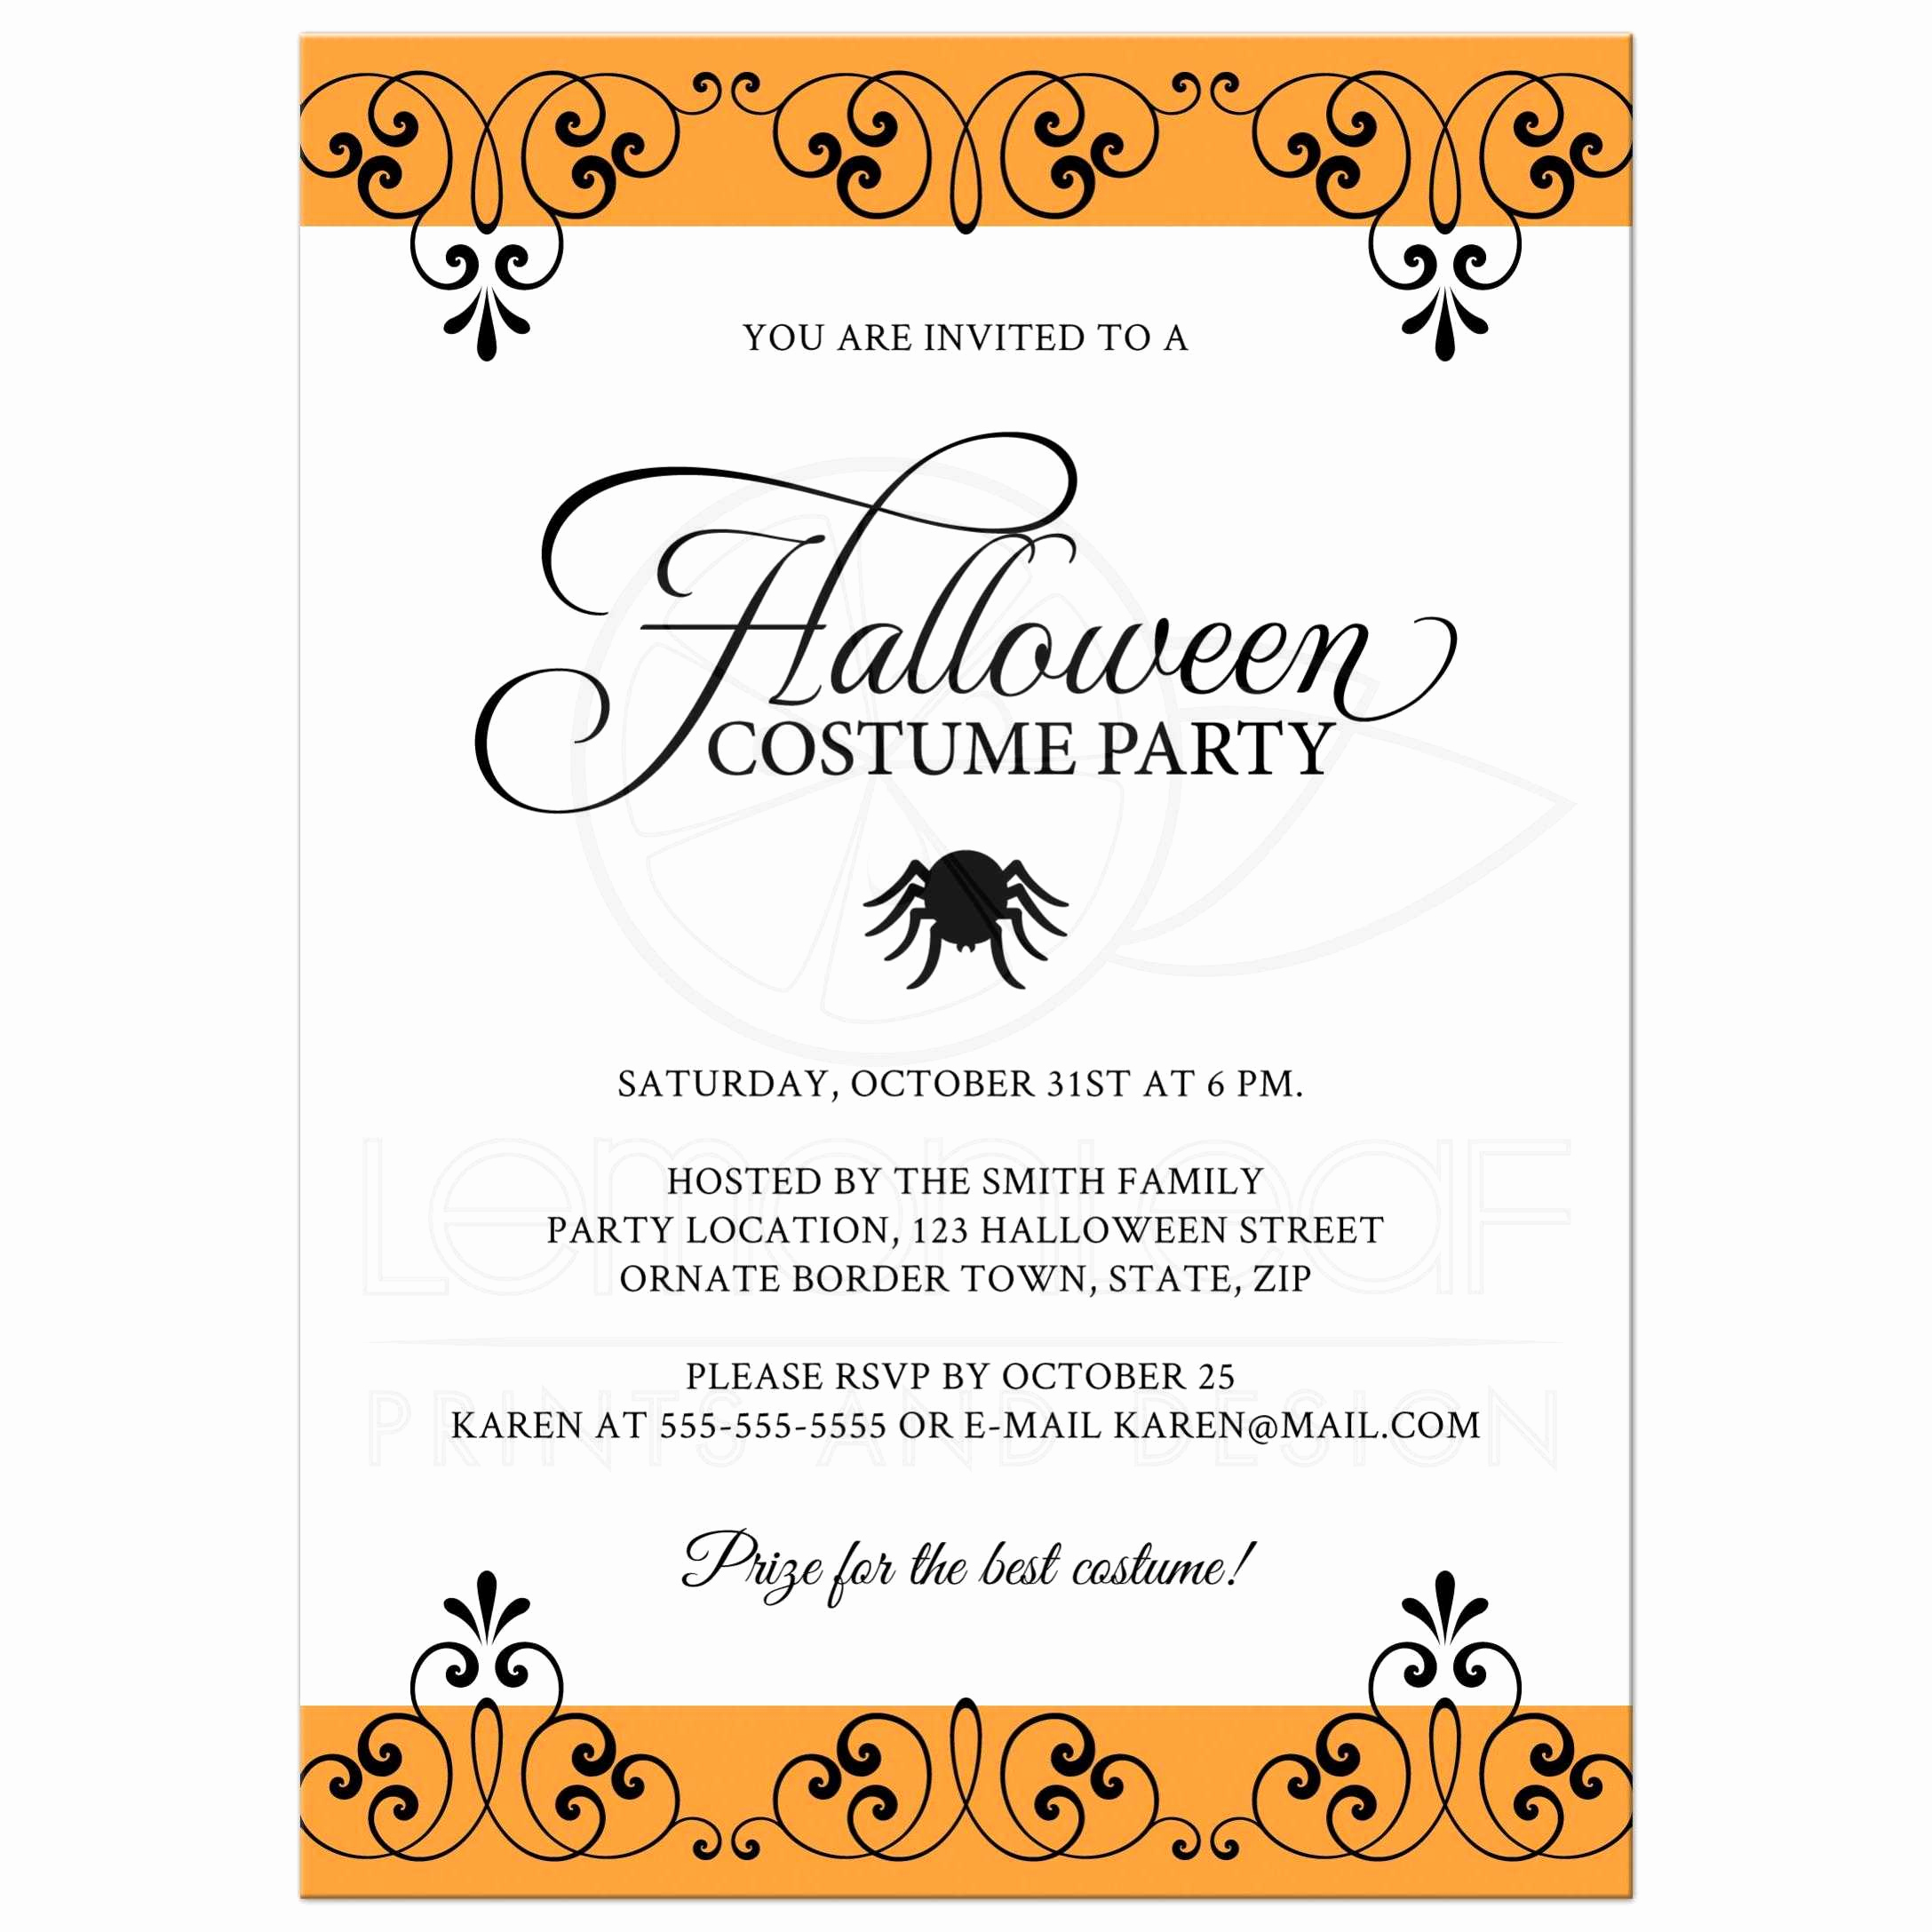 Halloween Party Invitation Wording Inspirational Halloween Costume Party Invitation with ornate Black and